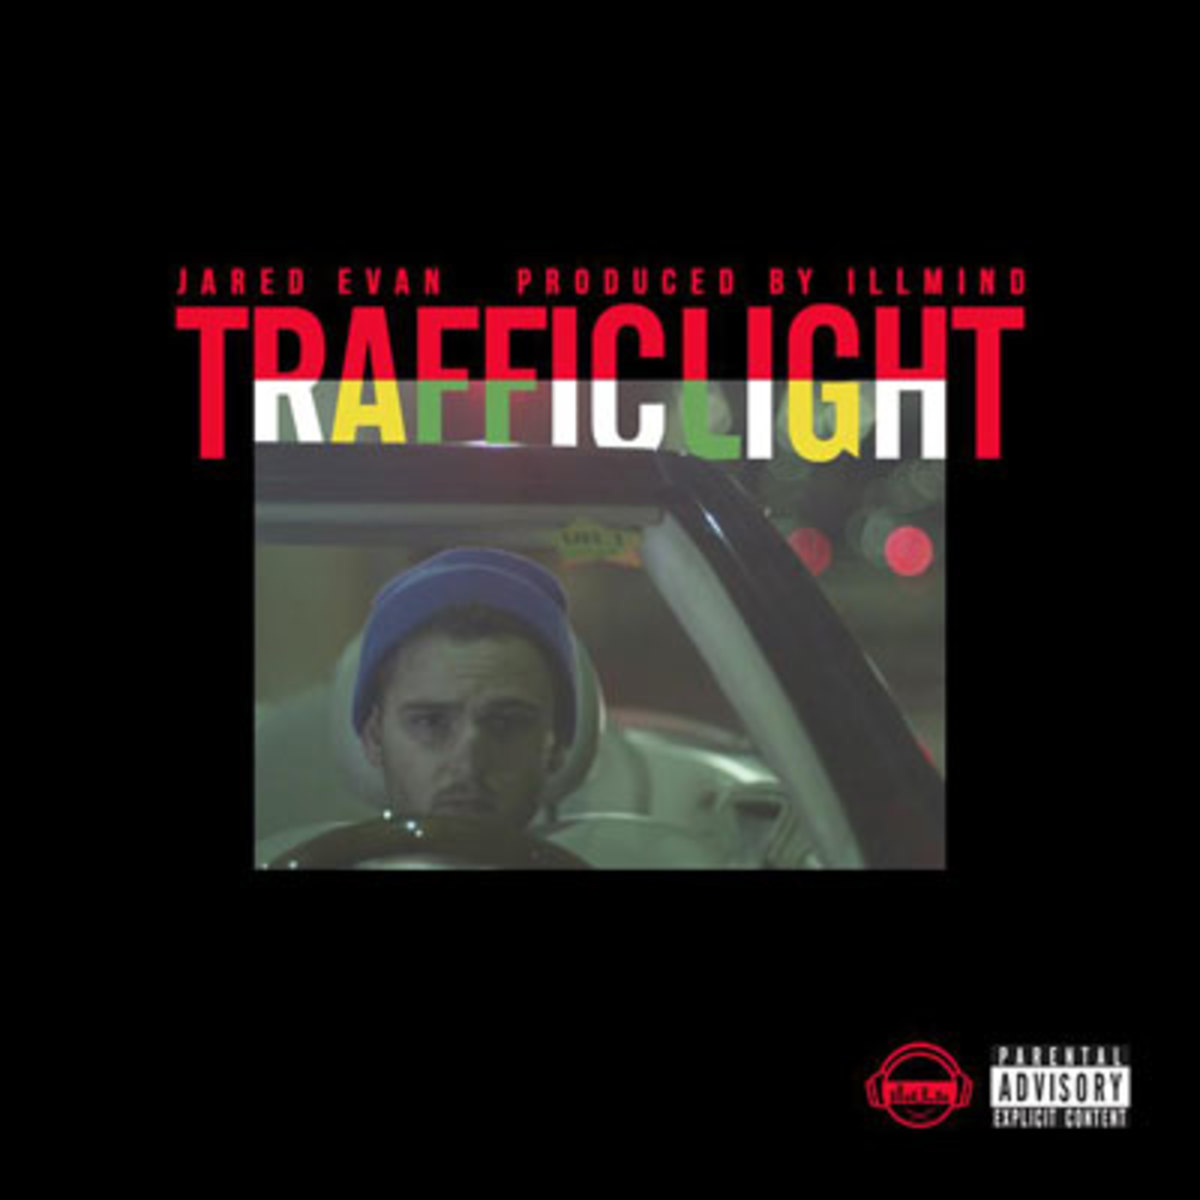 jaredevan-trafficlight.jpg